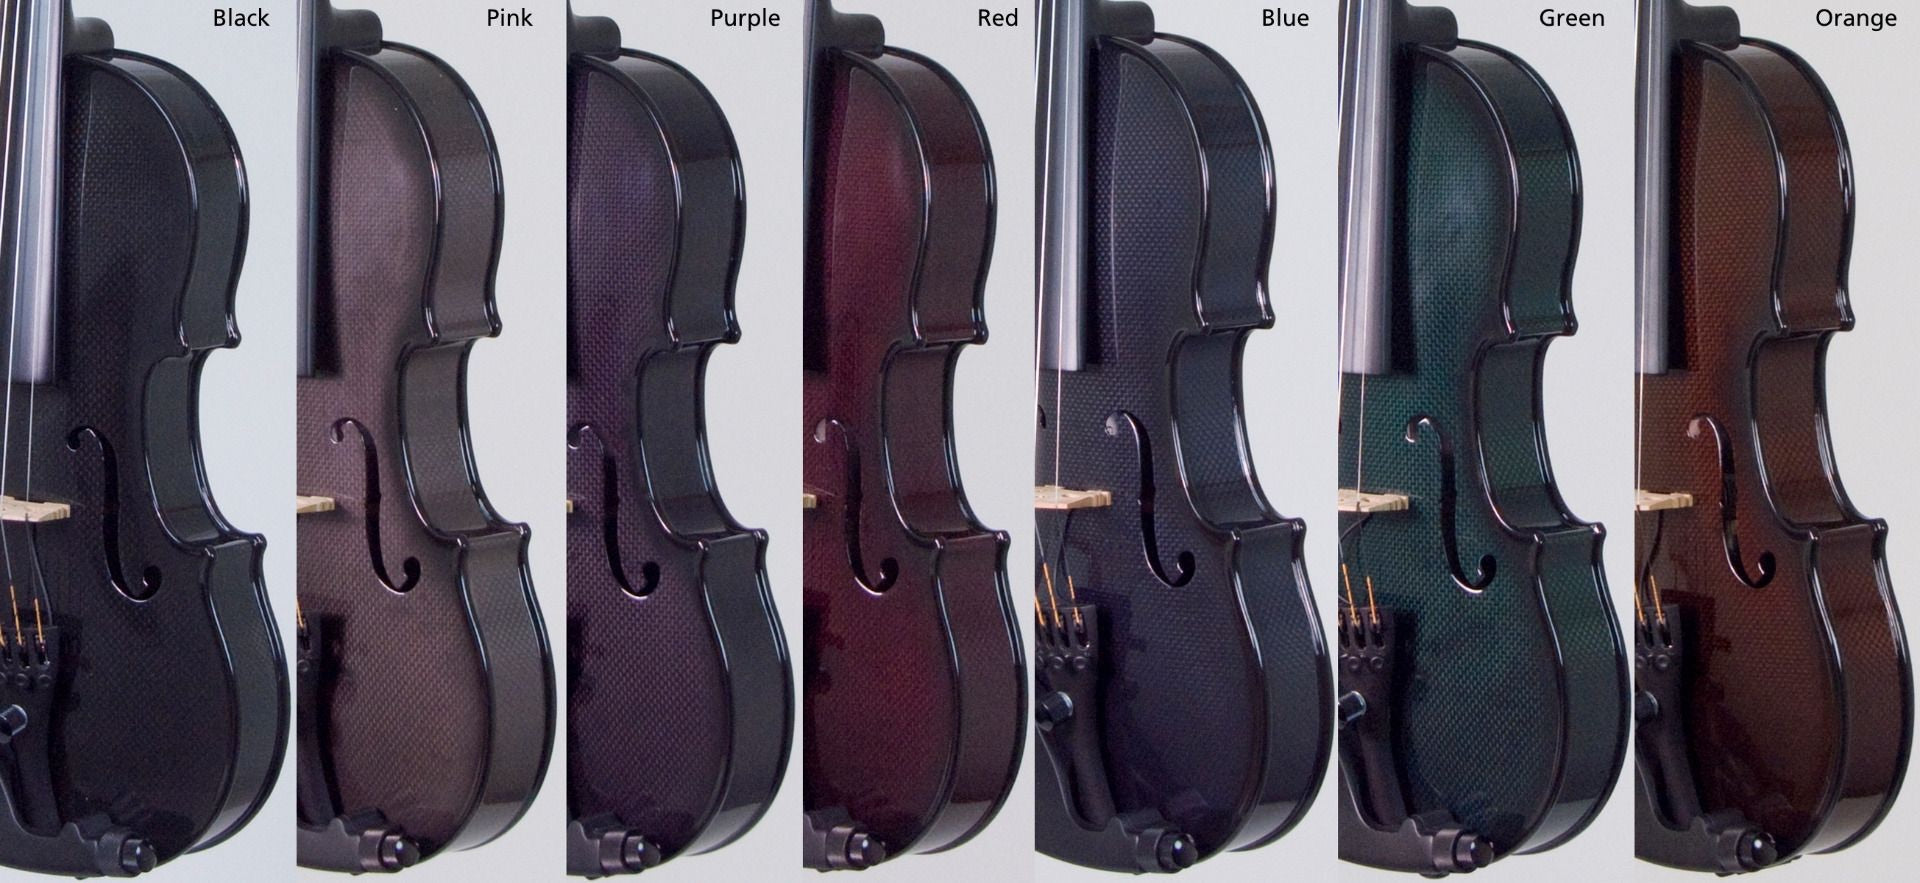 Acoustic Electric Carbon Fiber Violins